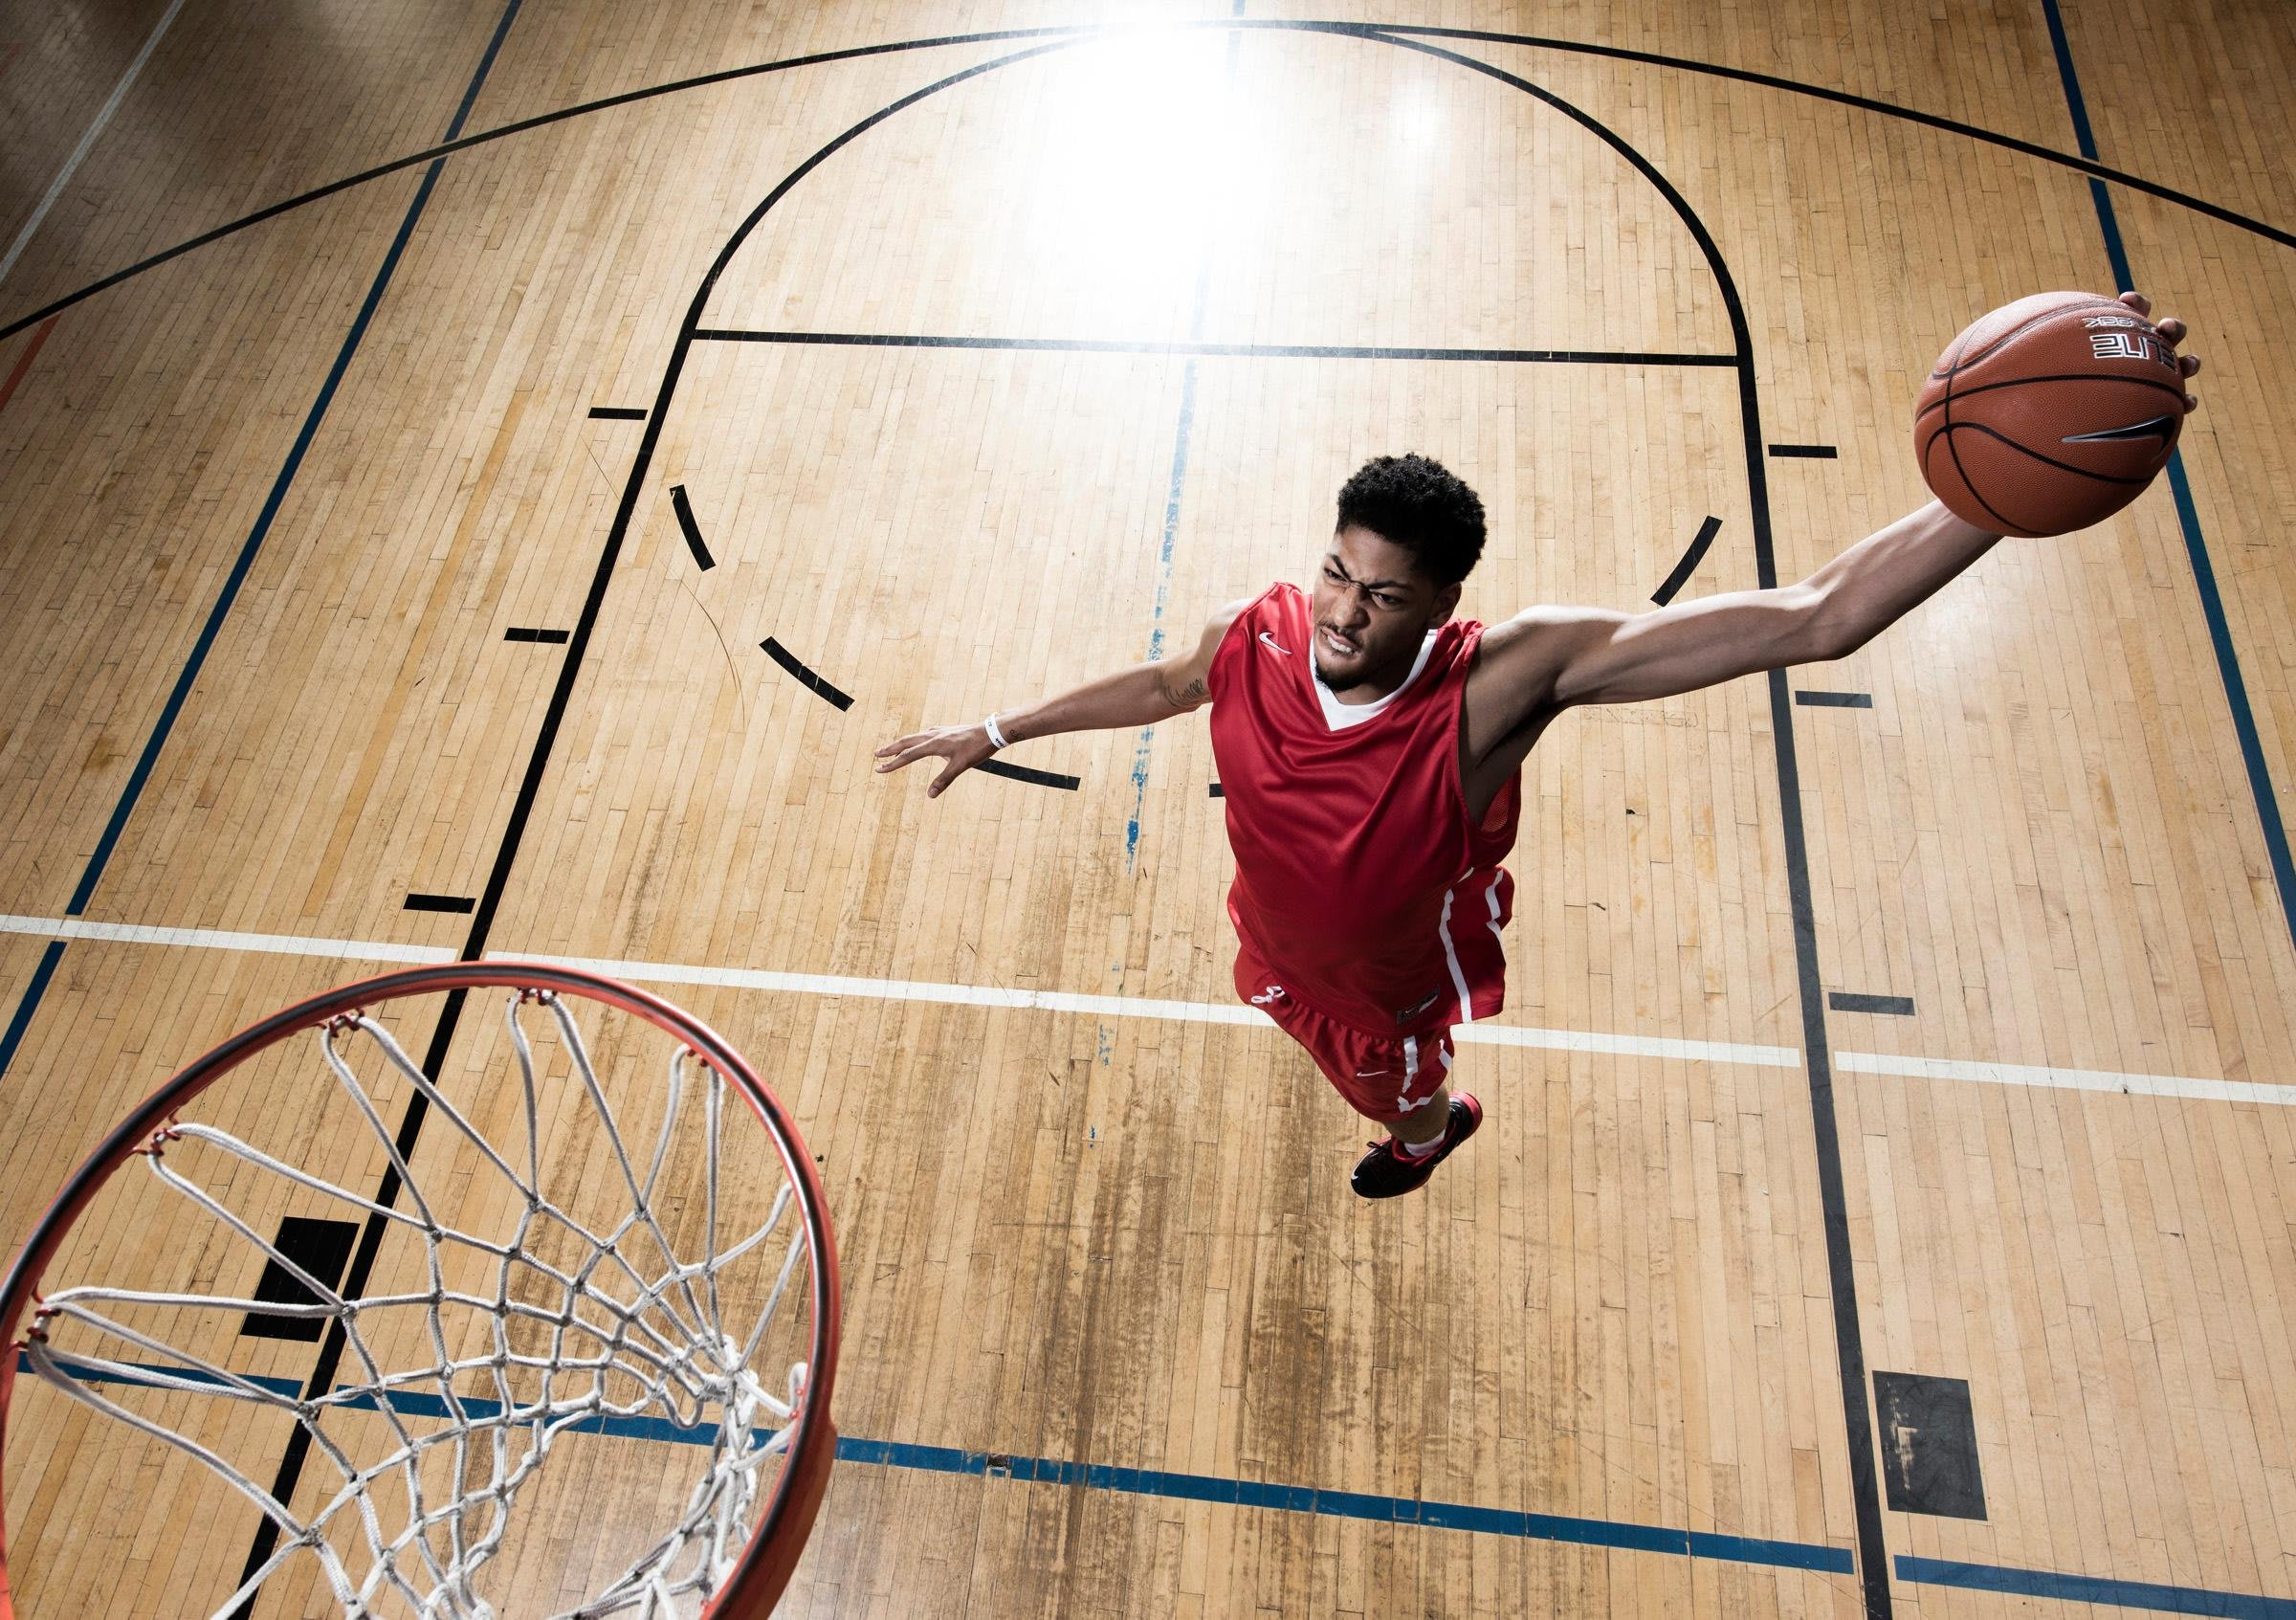 How to Shoot a Basketball Like a Pro: Complete Guide